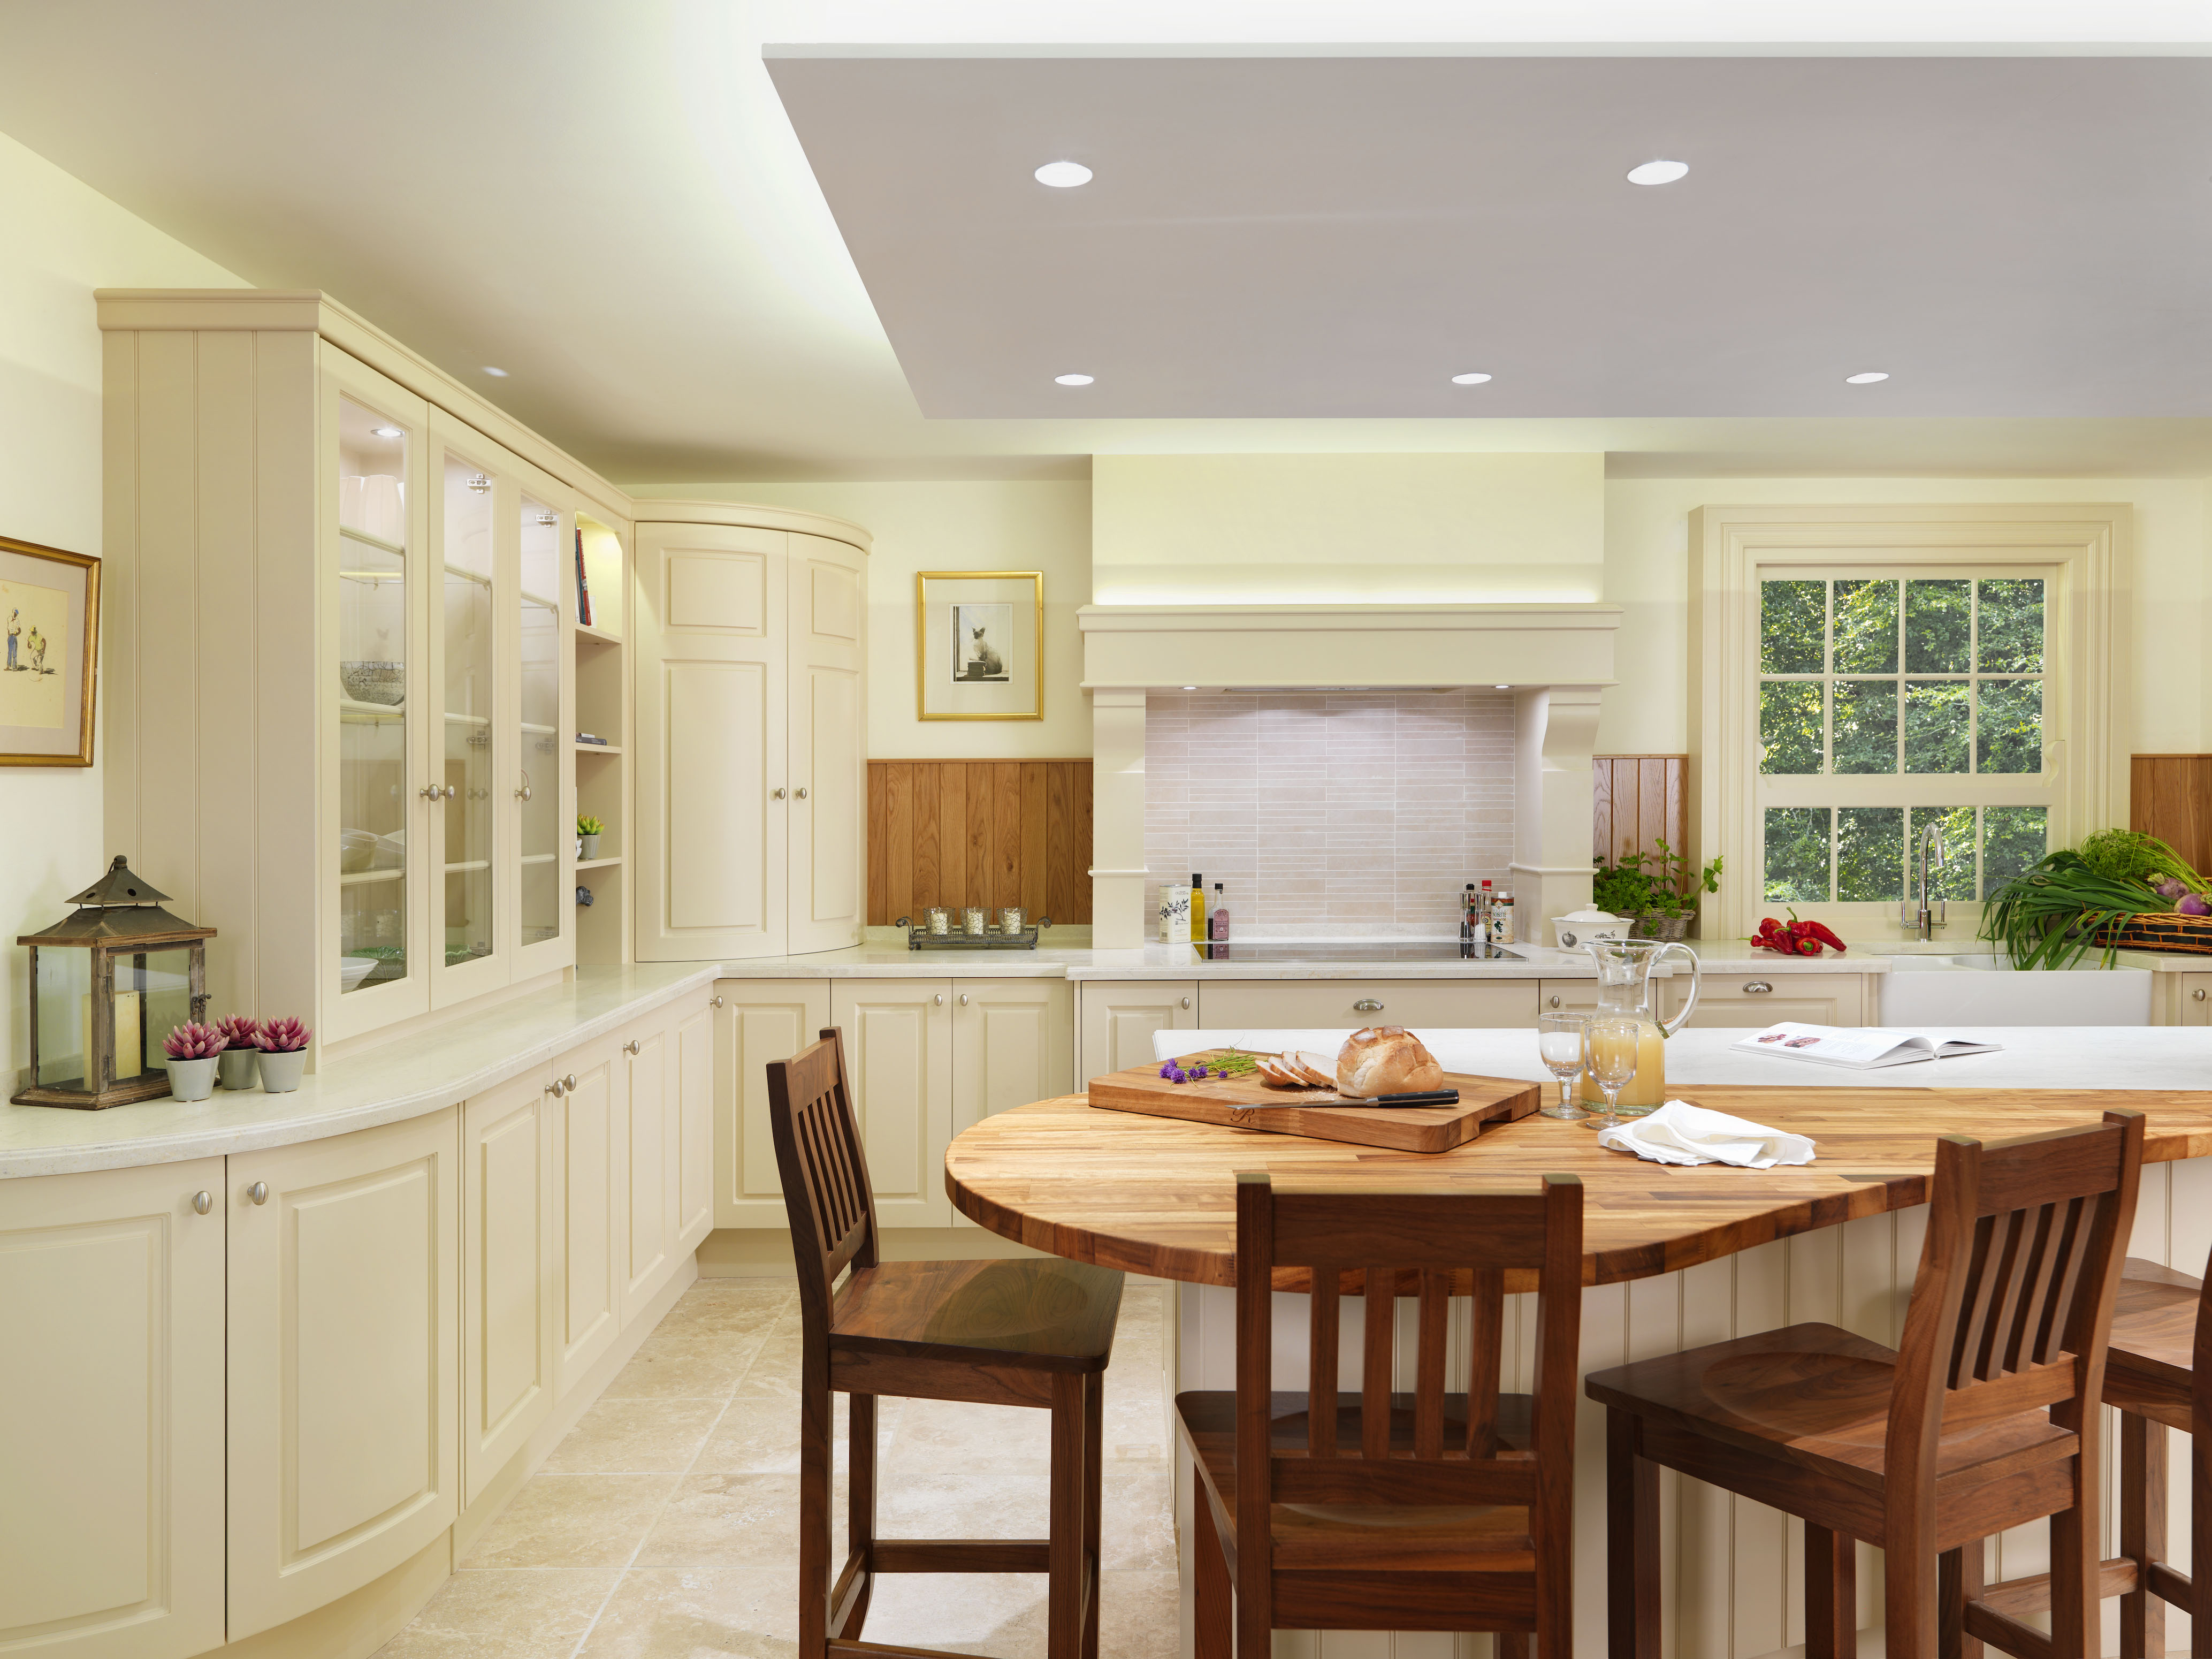 White Kitchen And Fresh Look With Wooden Kitchen Table Chairs Set